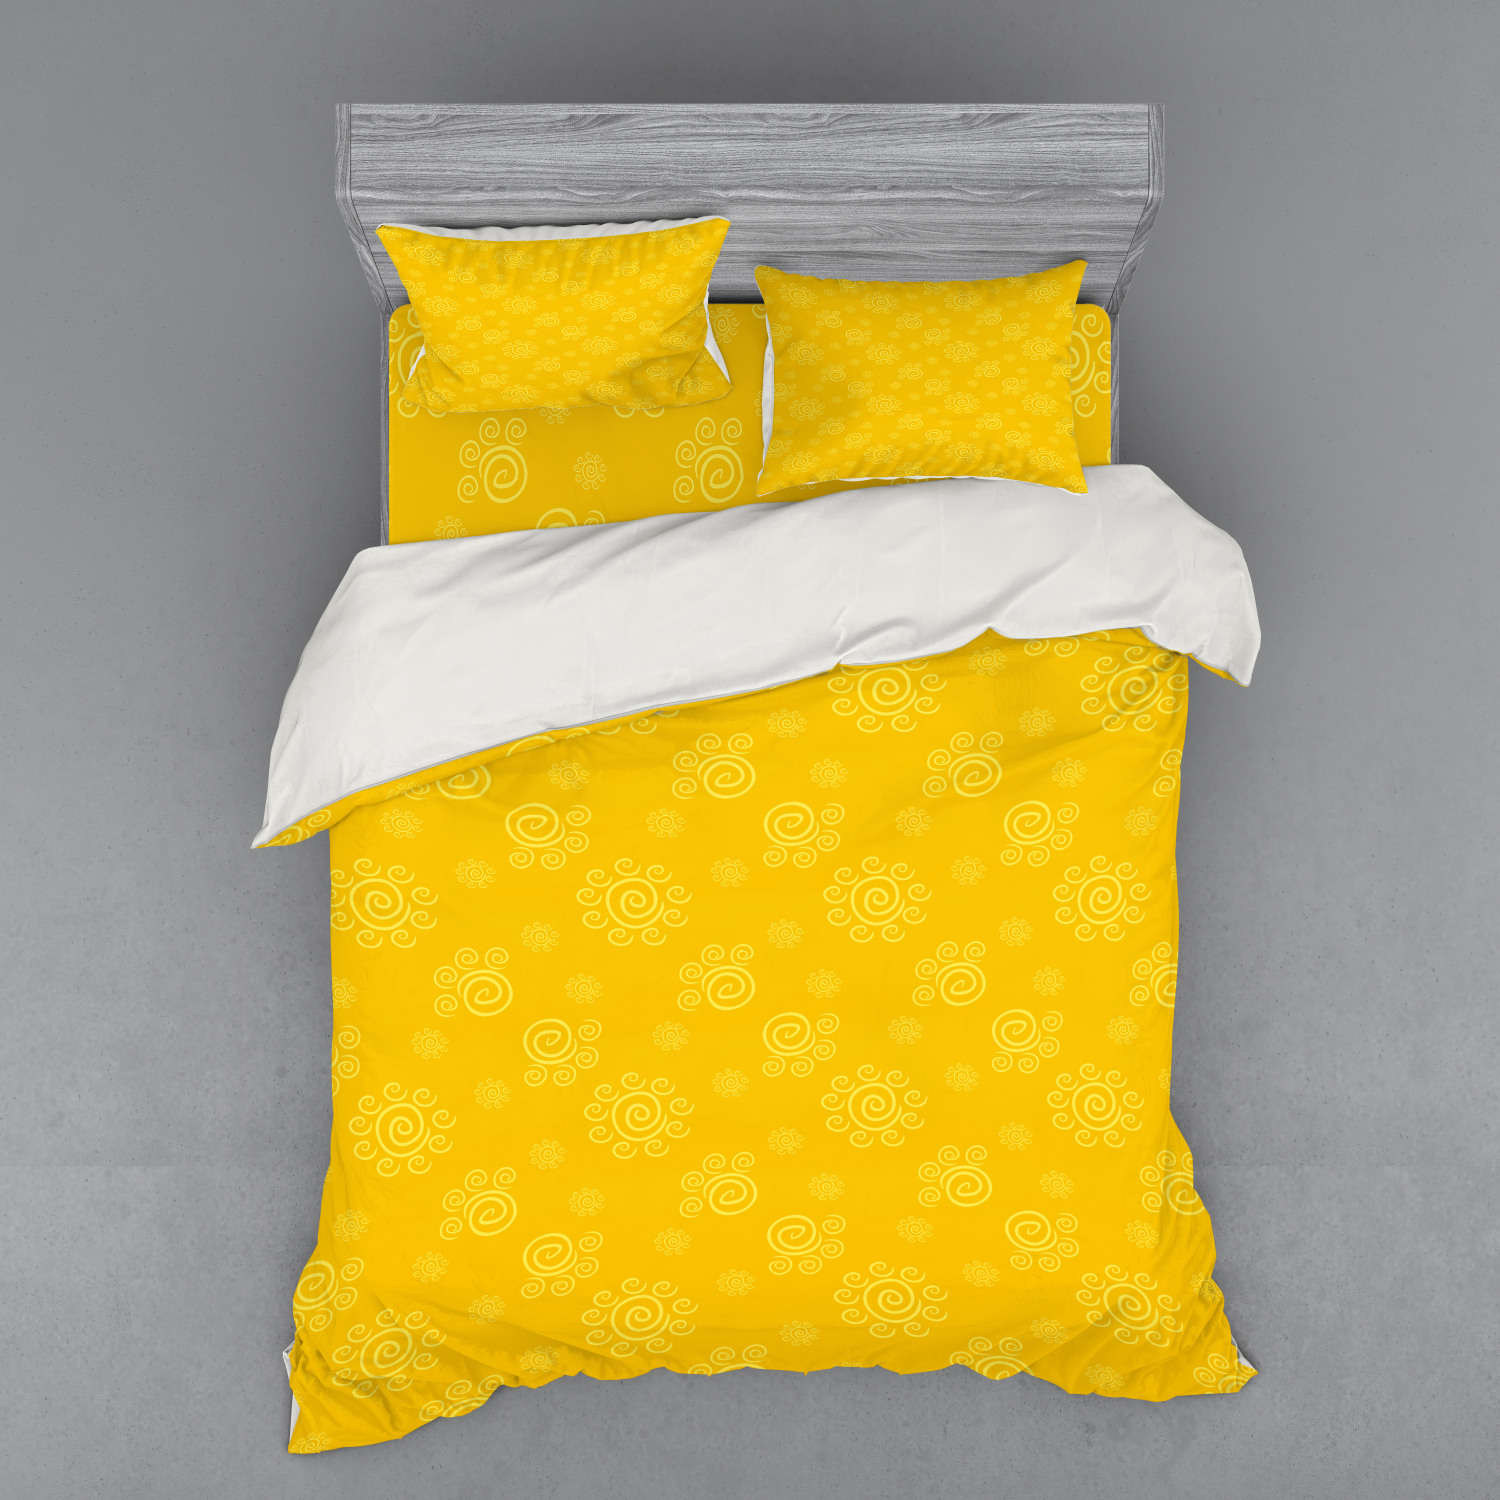 thumbnail 198 - Ambesonne Summer Bedding Set Duvet Cover Sham Fitted Sheet in 3 Sizes